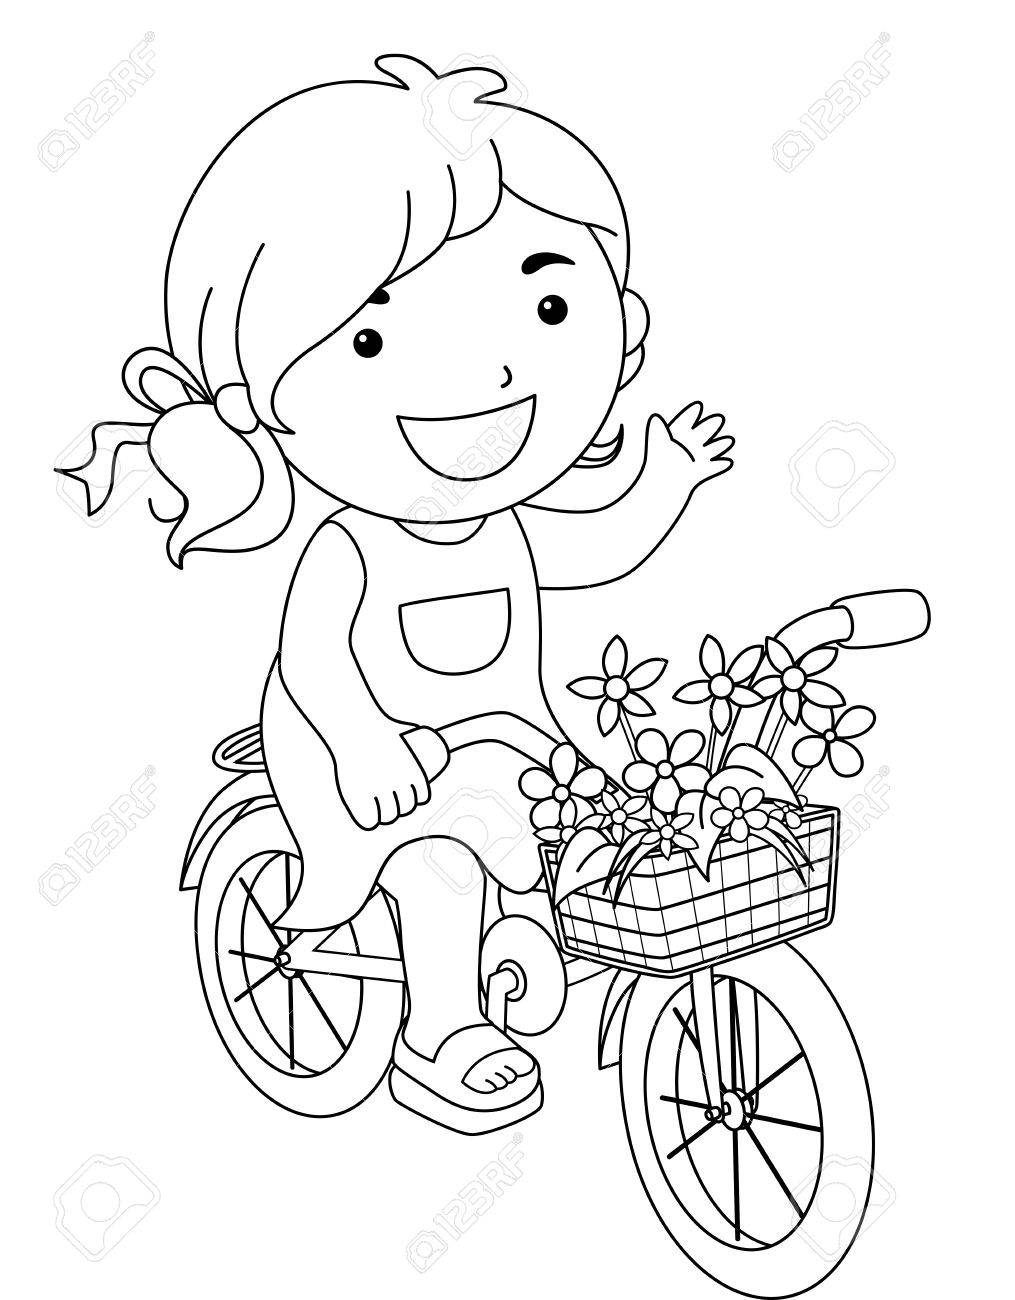 coloring book line art illustration of a little girl riding a bike carrying a basket of - Bicycle Coloring Book